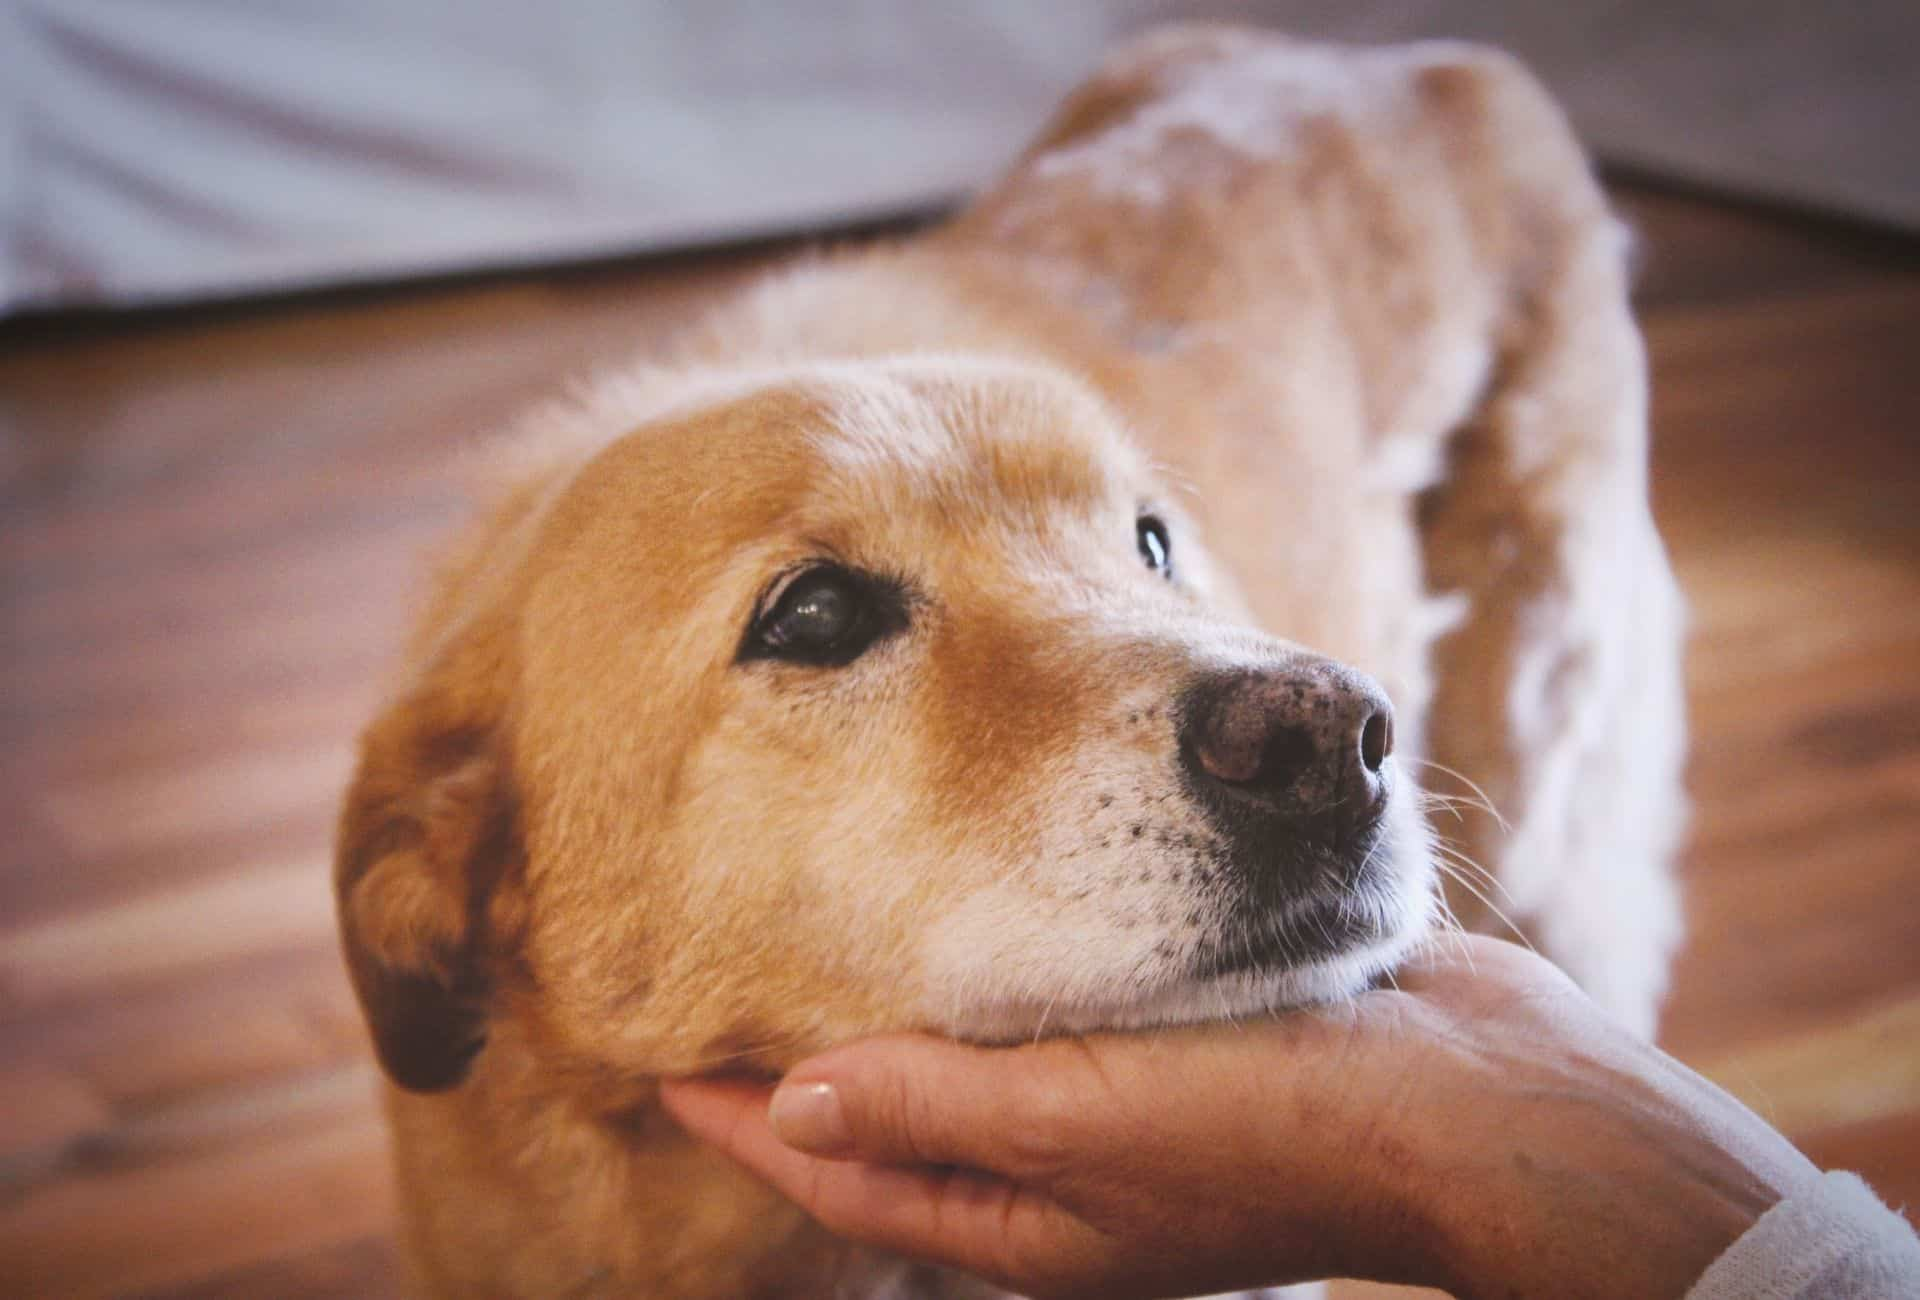 Cute dog laying head on owner's hand.